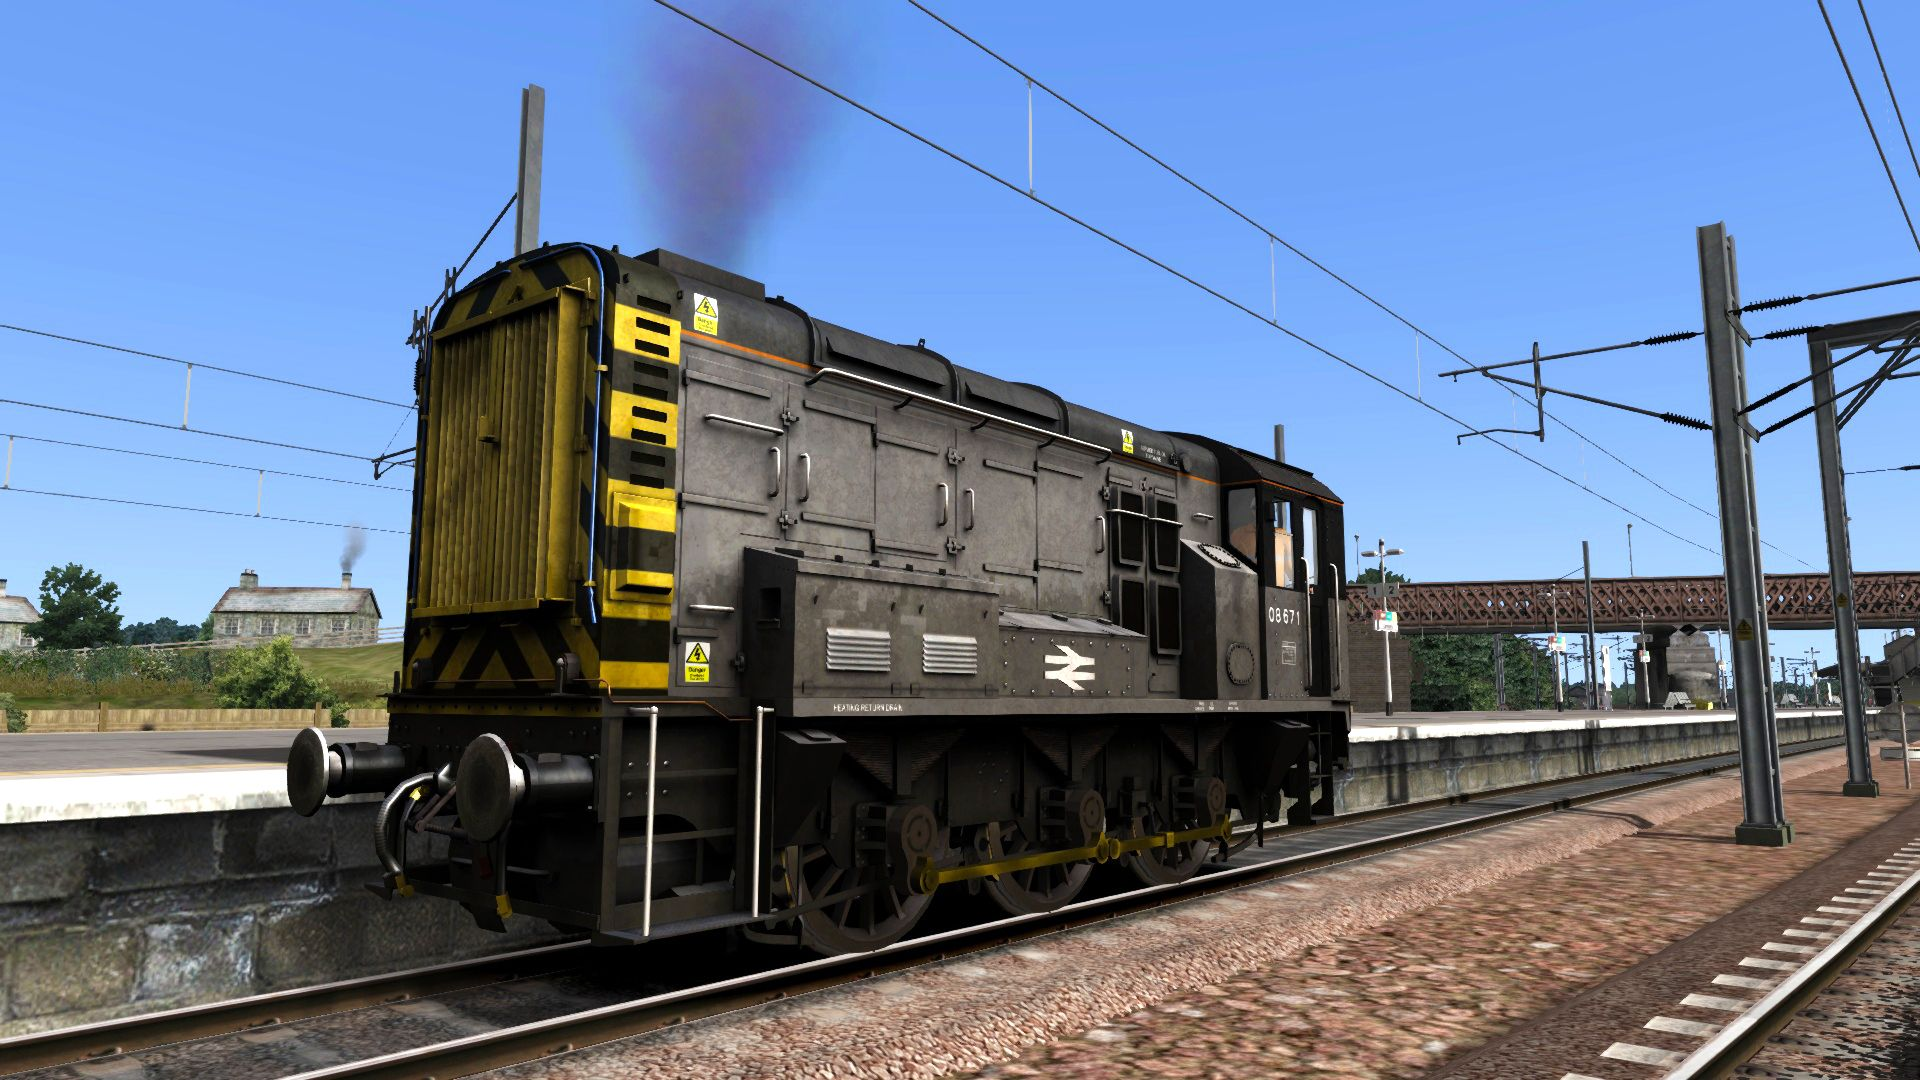 Image showing screenshot of the BR General Class 08 Add-on Livery on the TS Marketplace